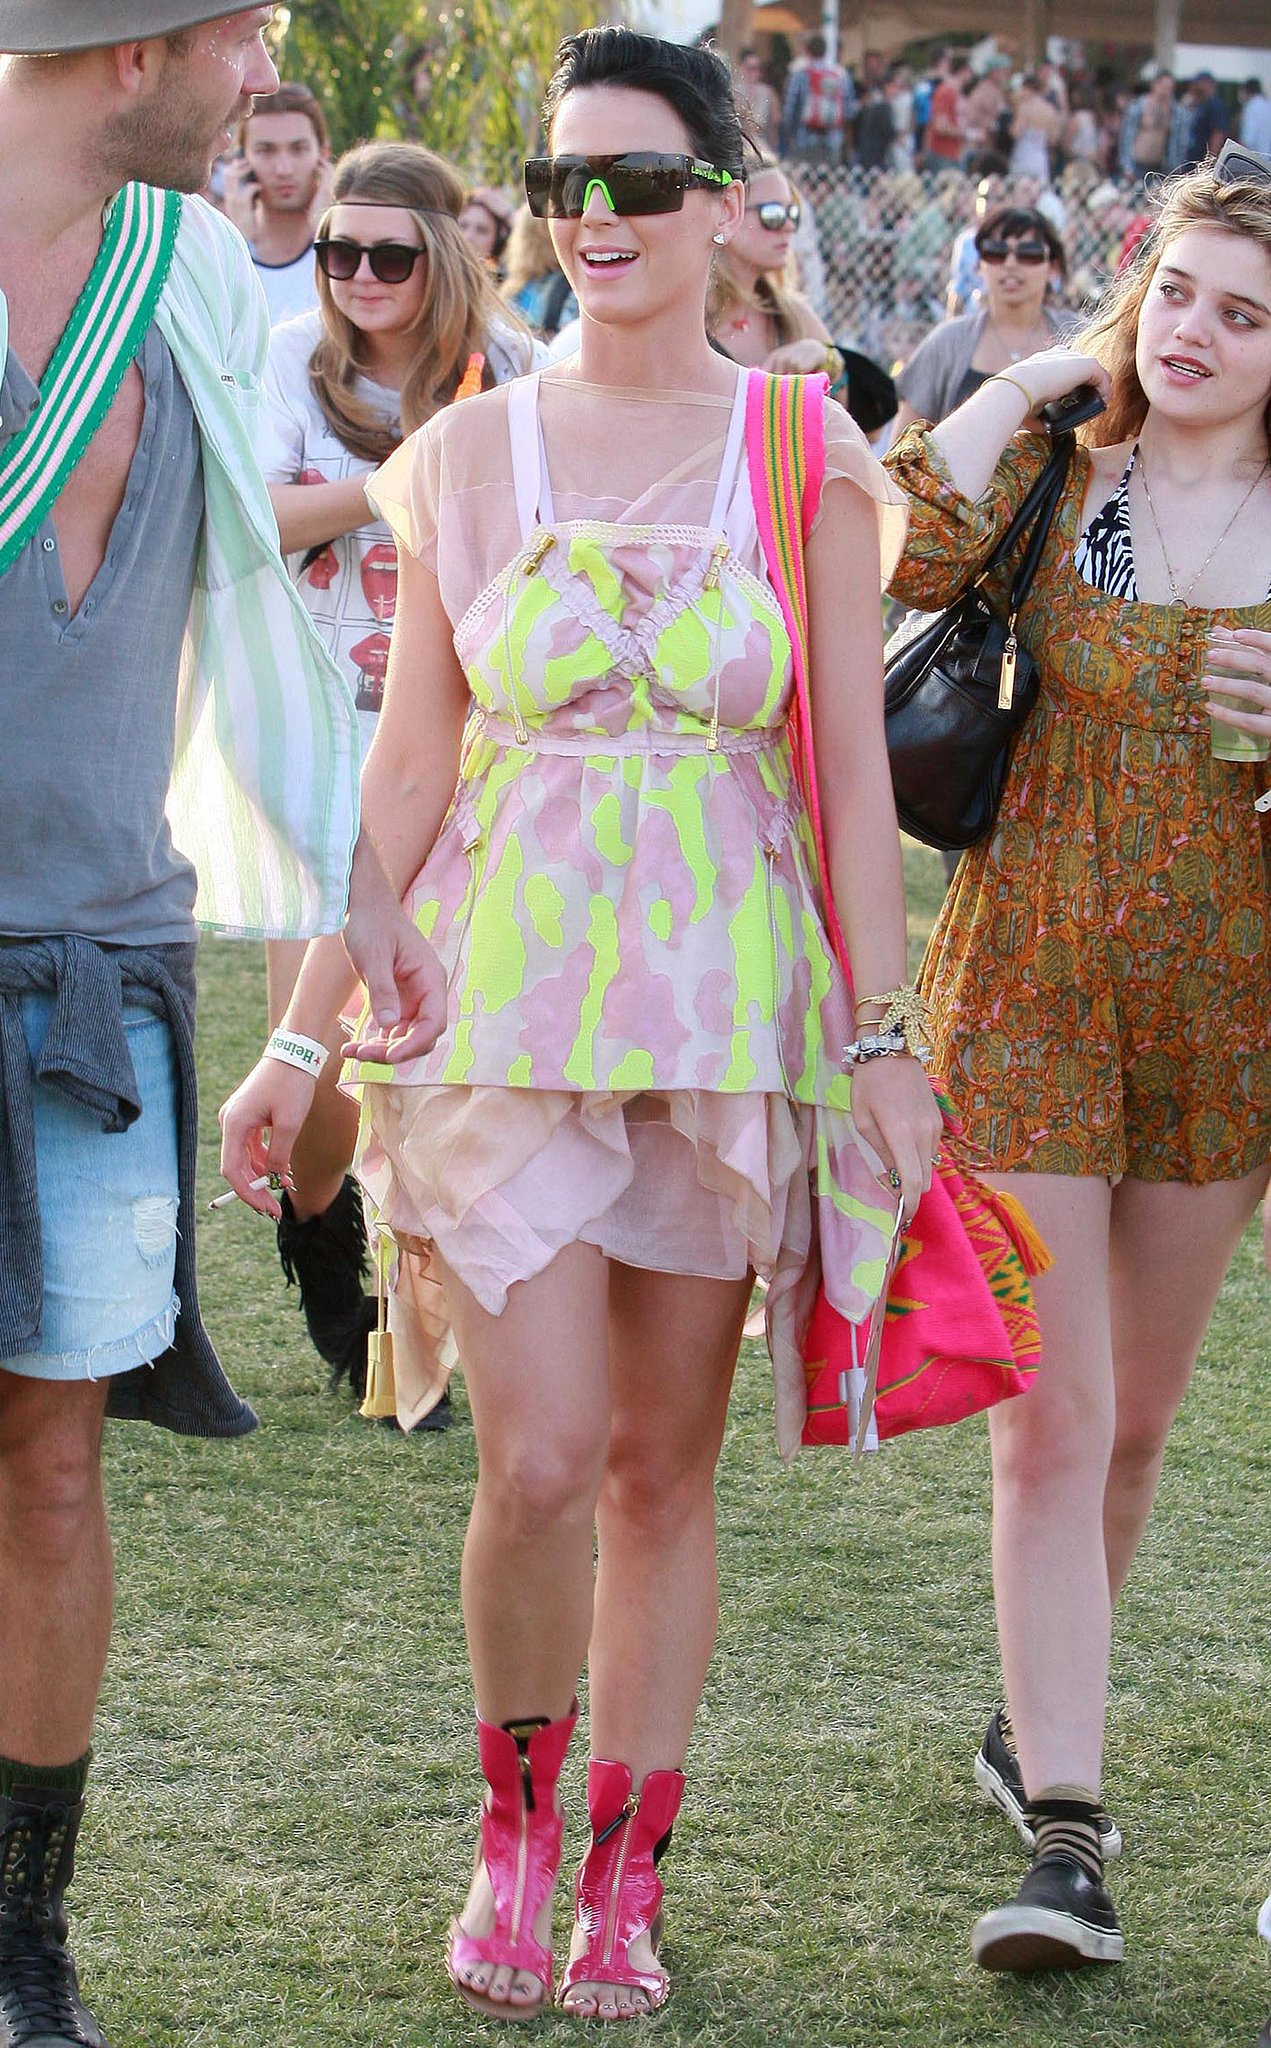 Katy Perry got colorful in the 2010 Coachella crowd.